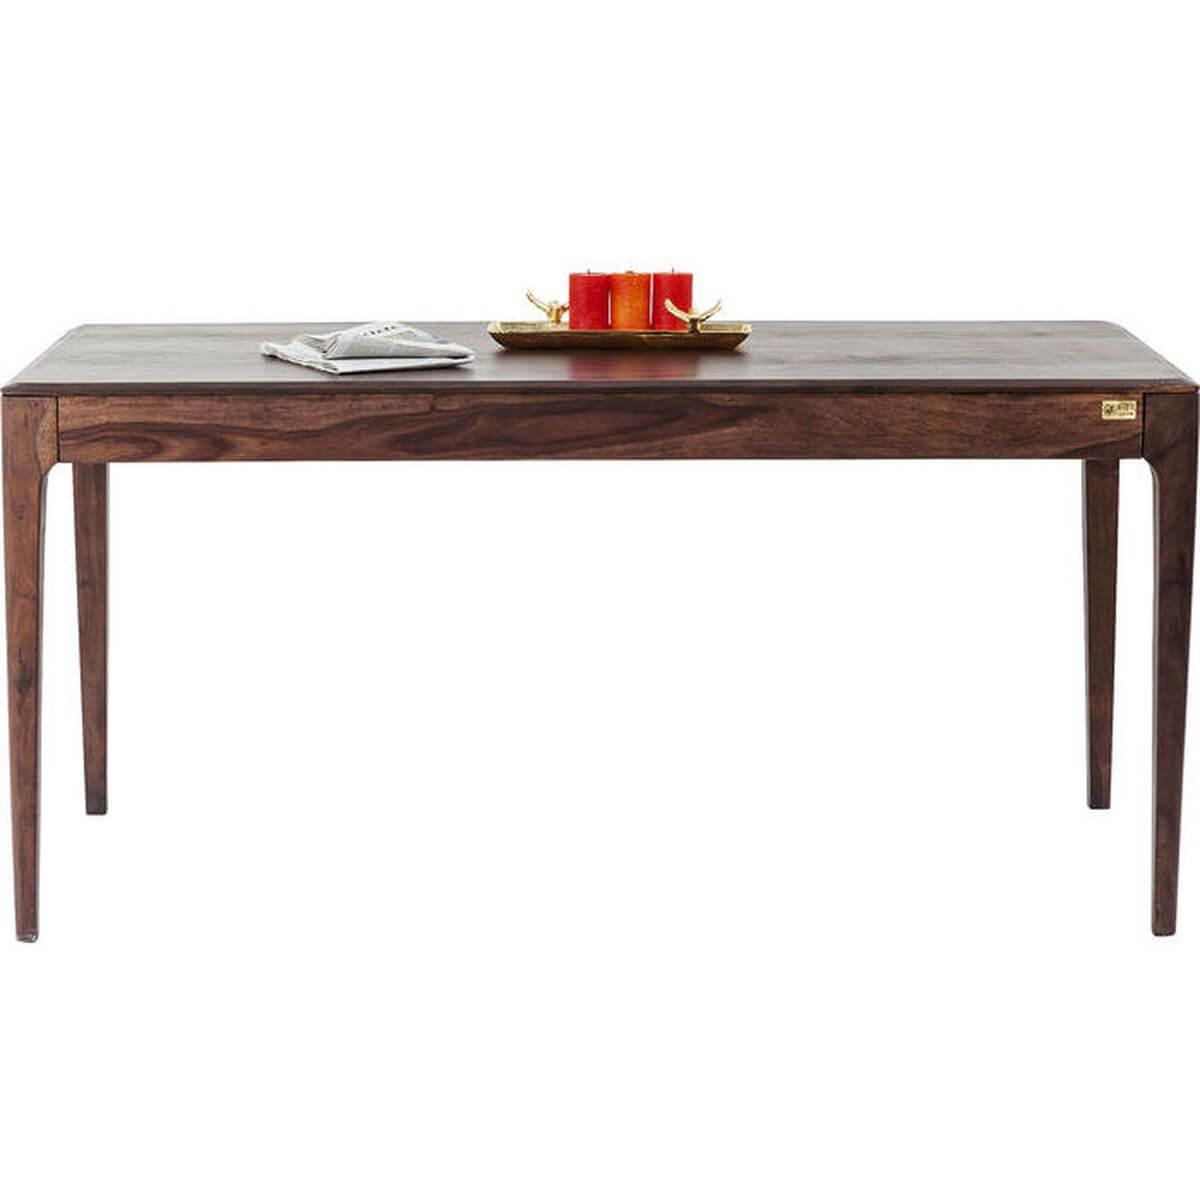 Table Brooklyn Walnut Kare Design 175x90cm